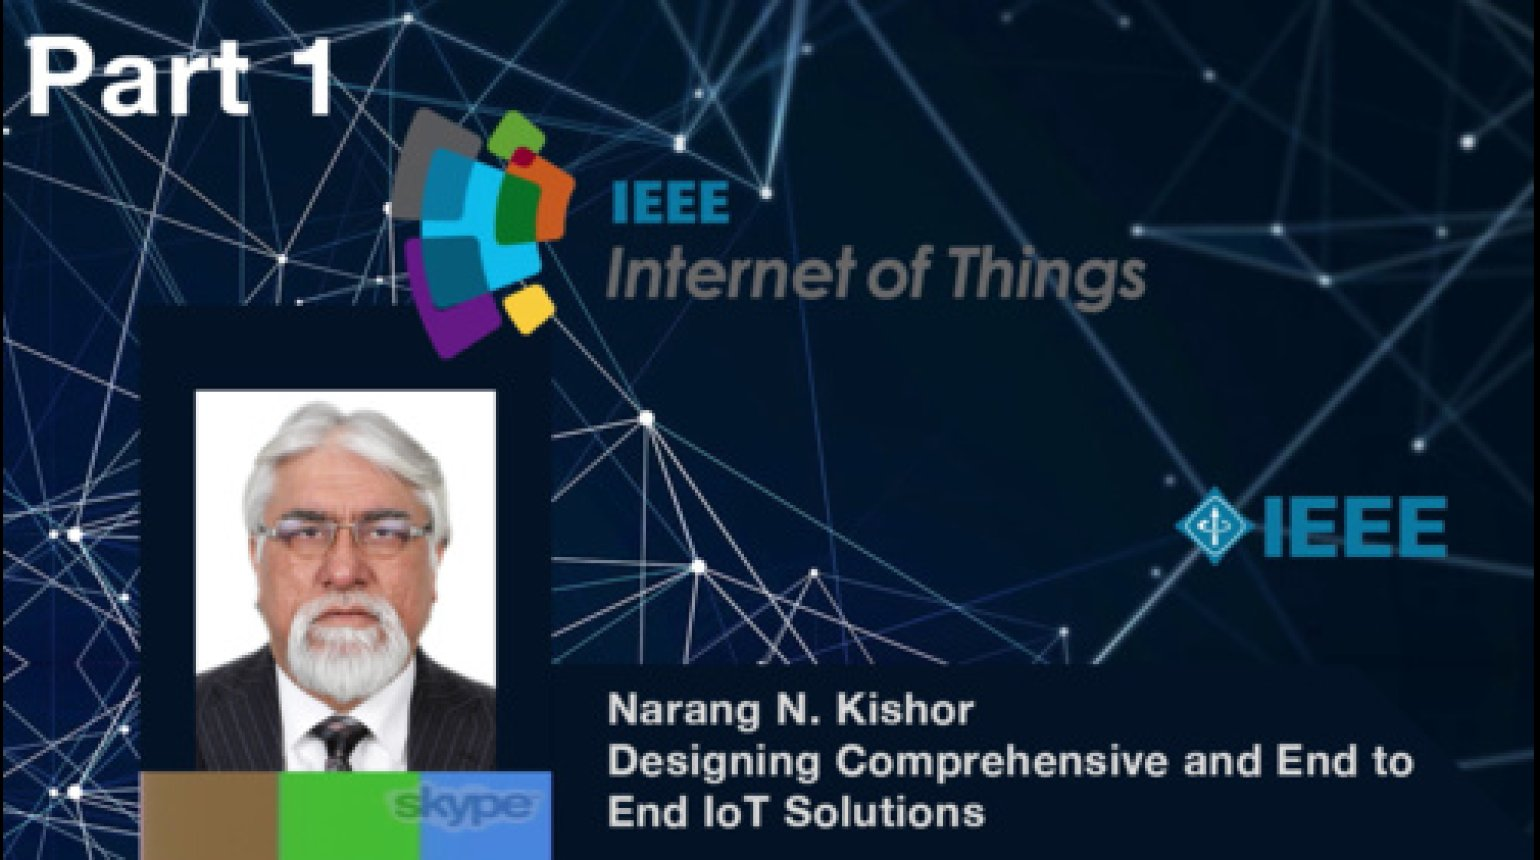 Tutorial on Designing Comprehensive and End to End IoT Solutions; Challenges, Opportunities, and Approaches to Develop New IPs - Narang N. Kishor, IEEE WF-IoT 2015